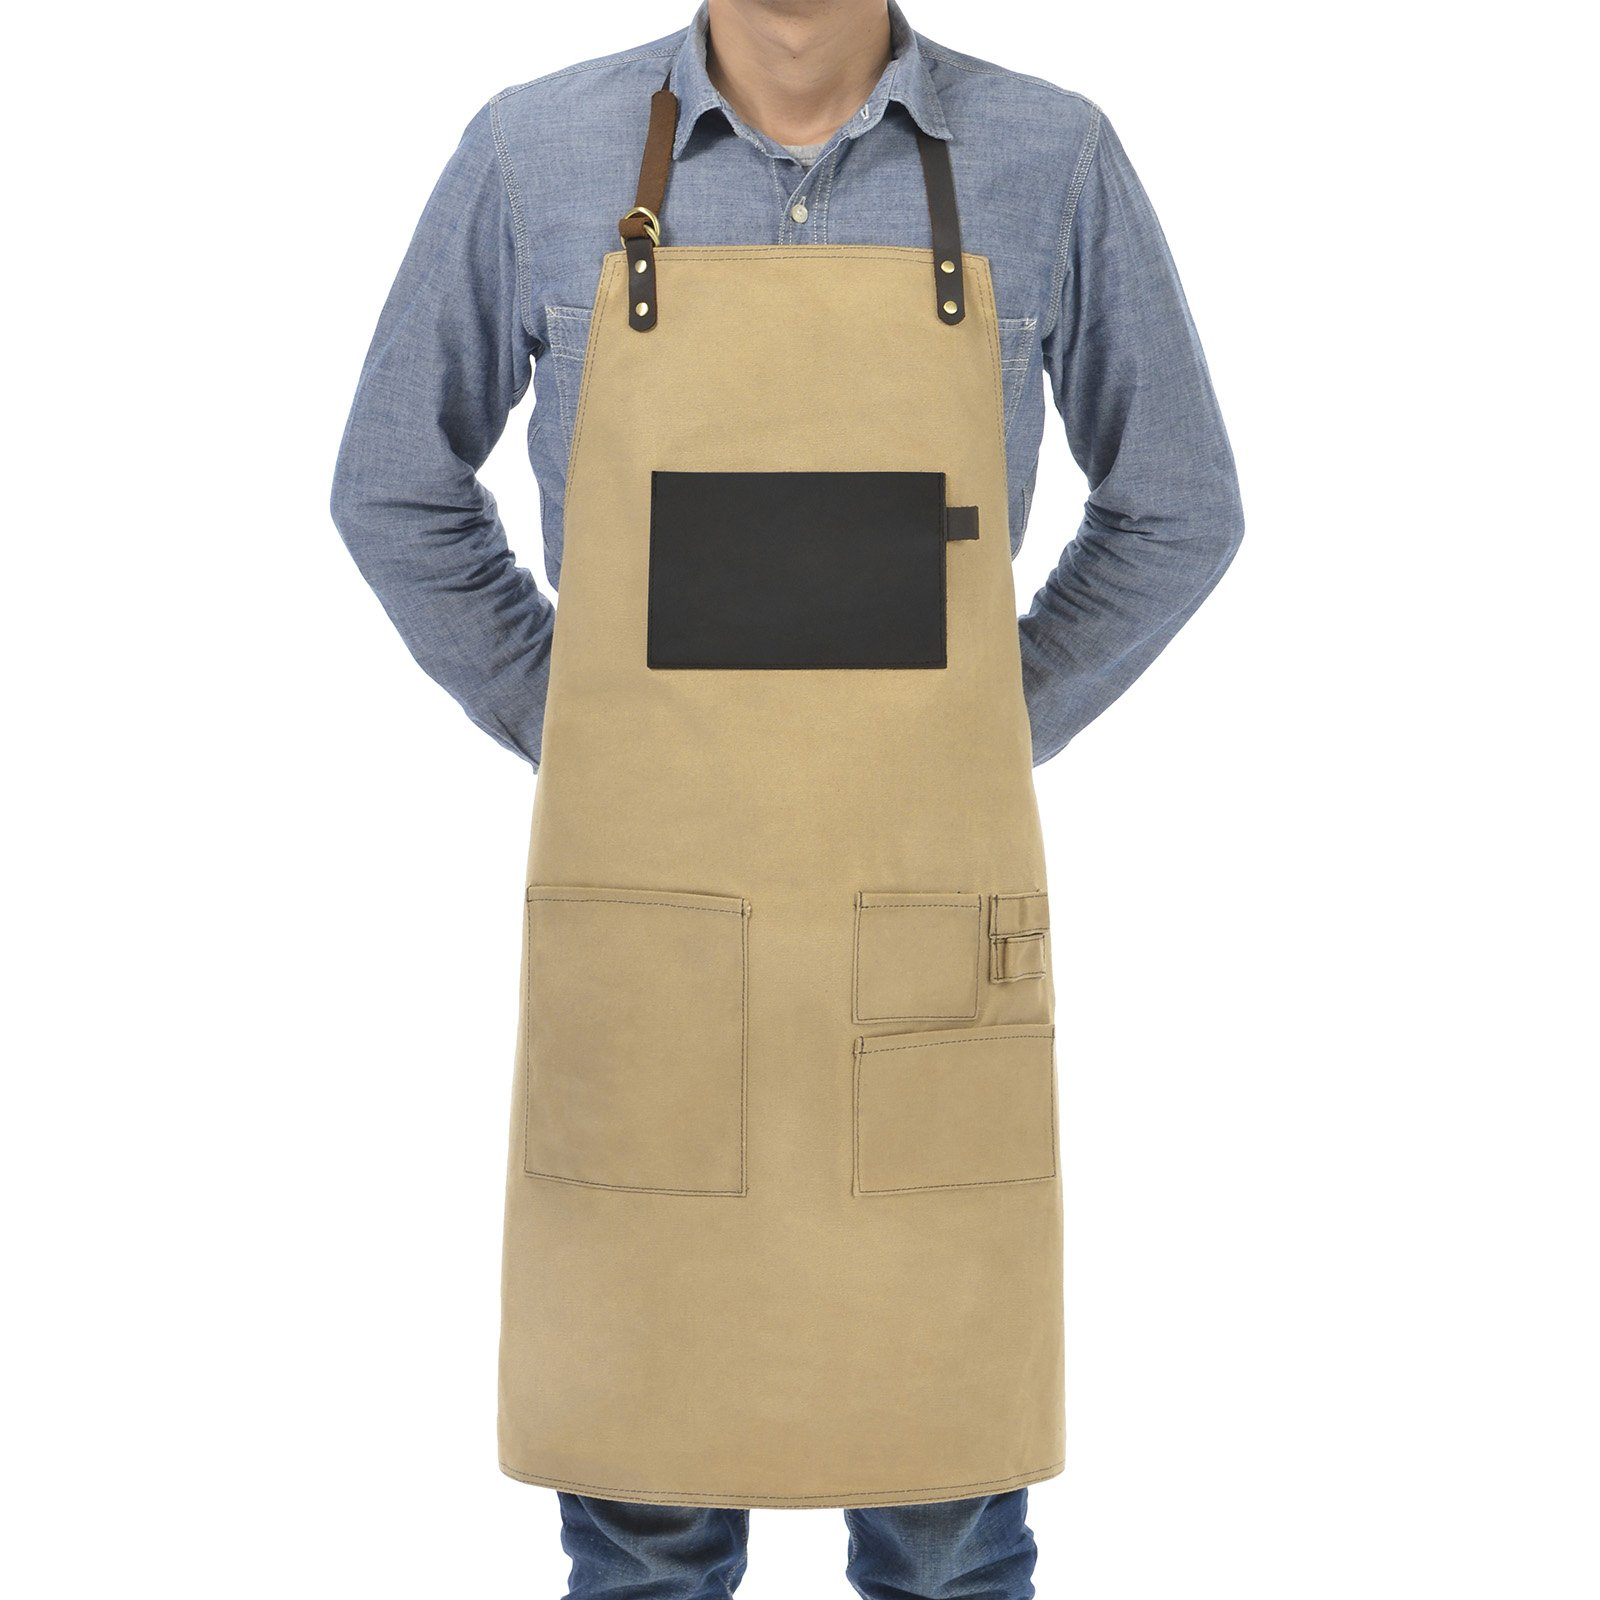 VEEYOO Heavy Duty Waxed Canvas Utility Apron with Pockets, Adjustable Shop Work Tool Welding Apron for Men and Women, Tan, 27x34 inches